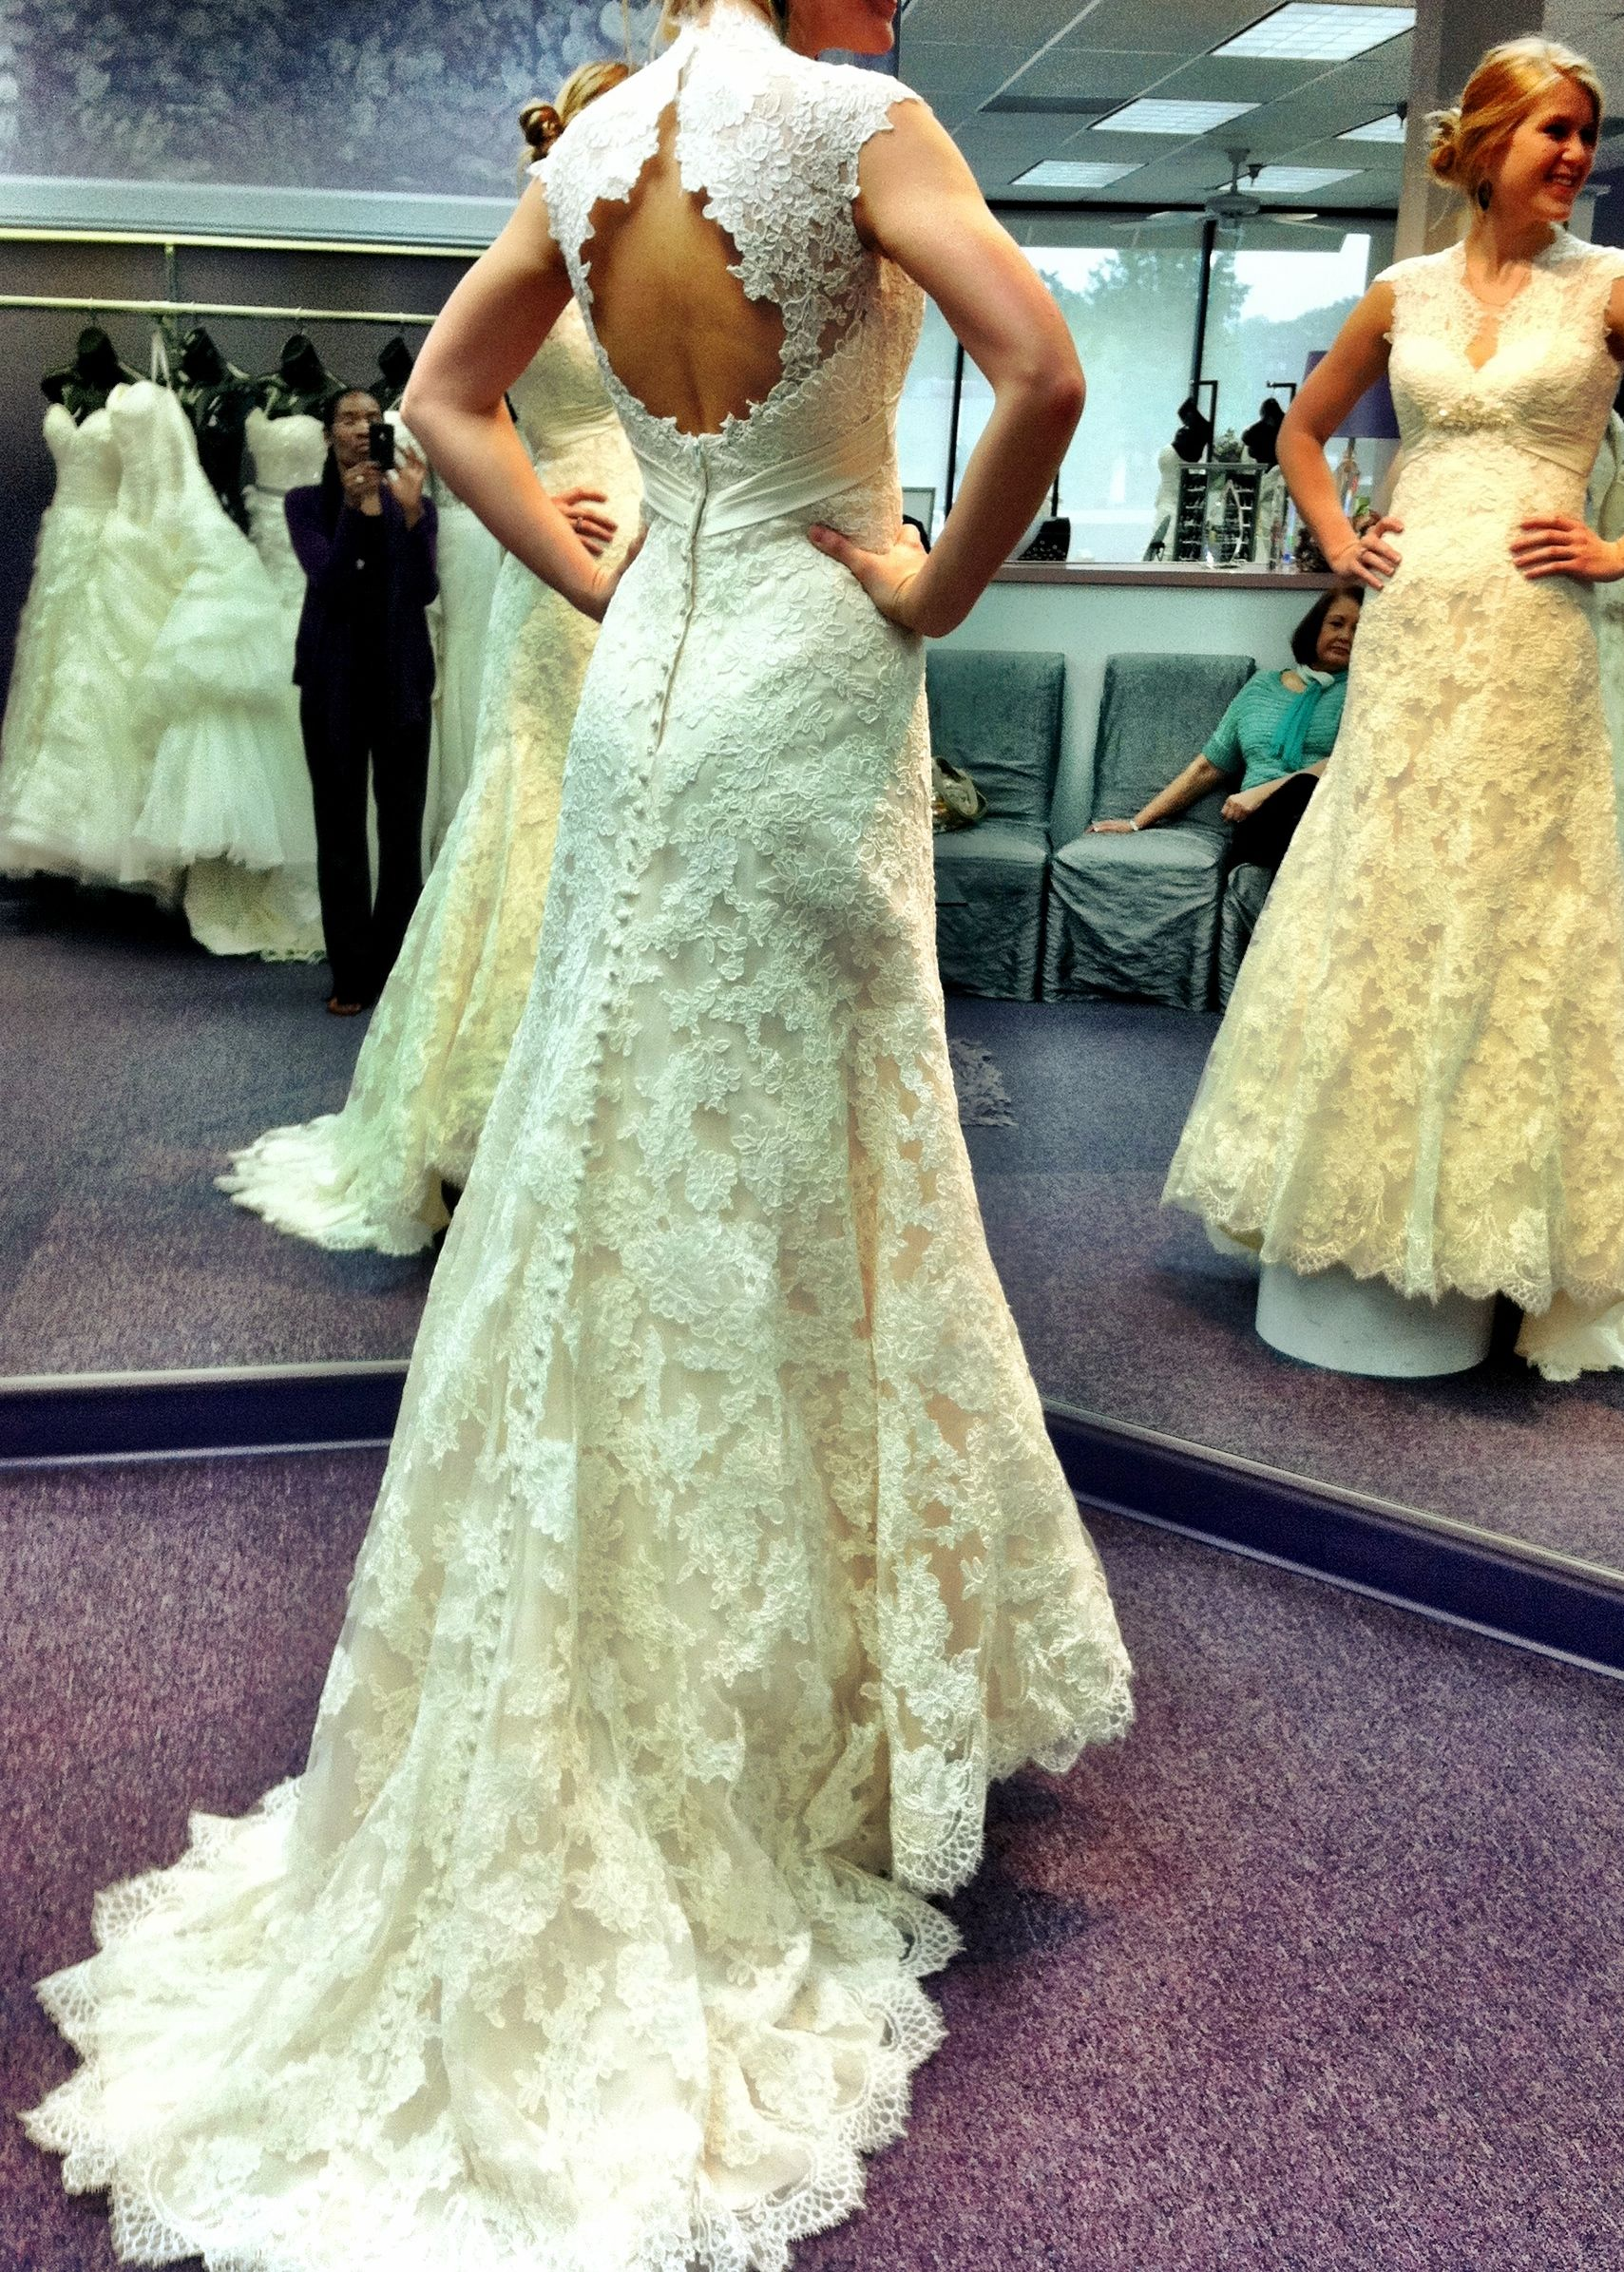 Size 6 wedding dress  Allure Allure Couture C Size  Wedding Dress  Pinterest  Allure